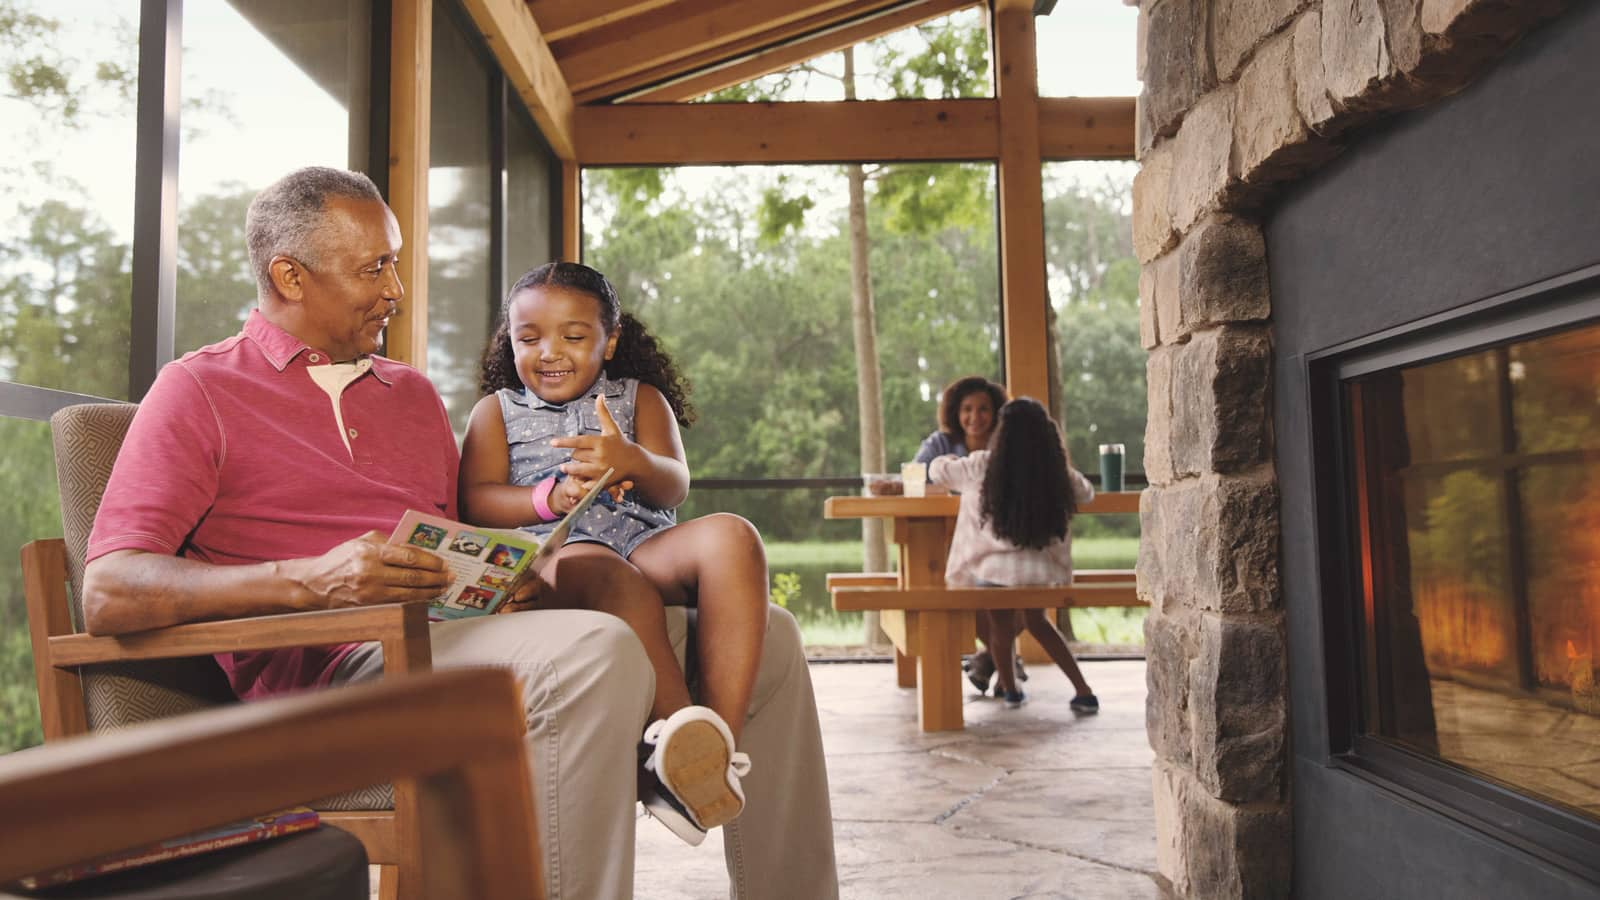 A man reads to a young girl in front of a fireplace and a woman and girl sit at a picnic table on a porch